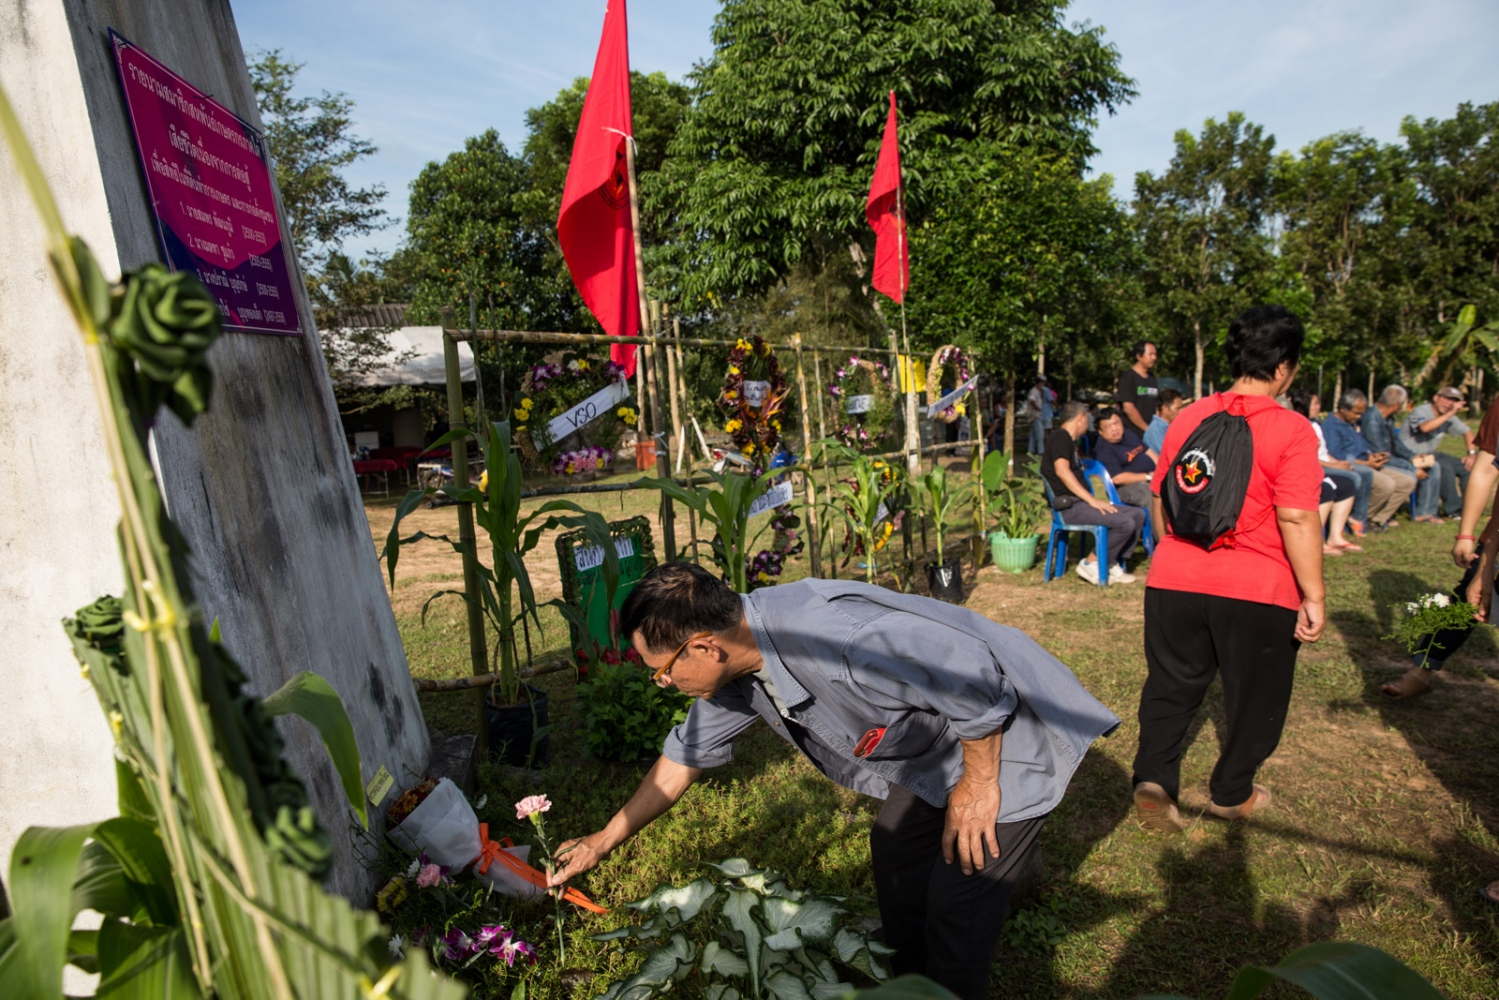 December 2018 marked the 10 year anniversary since the founding of the Southern Peasant's Federation of Thailand (SPFT) and the organisation held a series of events at Klong Sai Pattana village. Guests joined from around the country from some of the largest and oldest Thai rights groups, including the Assembly of the Poor and the Northern Farmers Federation of Thailand joined to pay respect to those who died. December 2018.